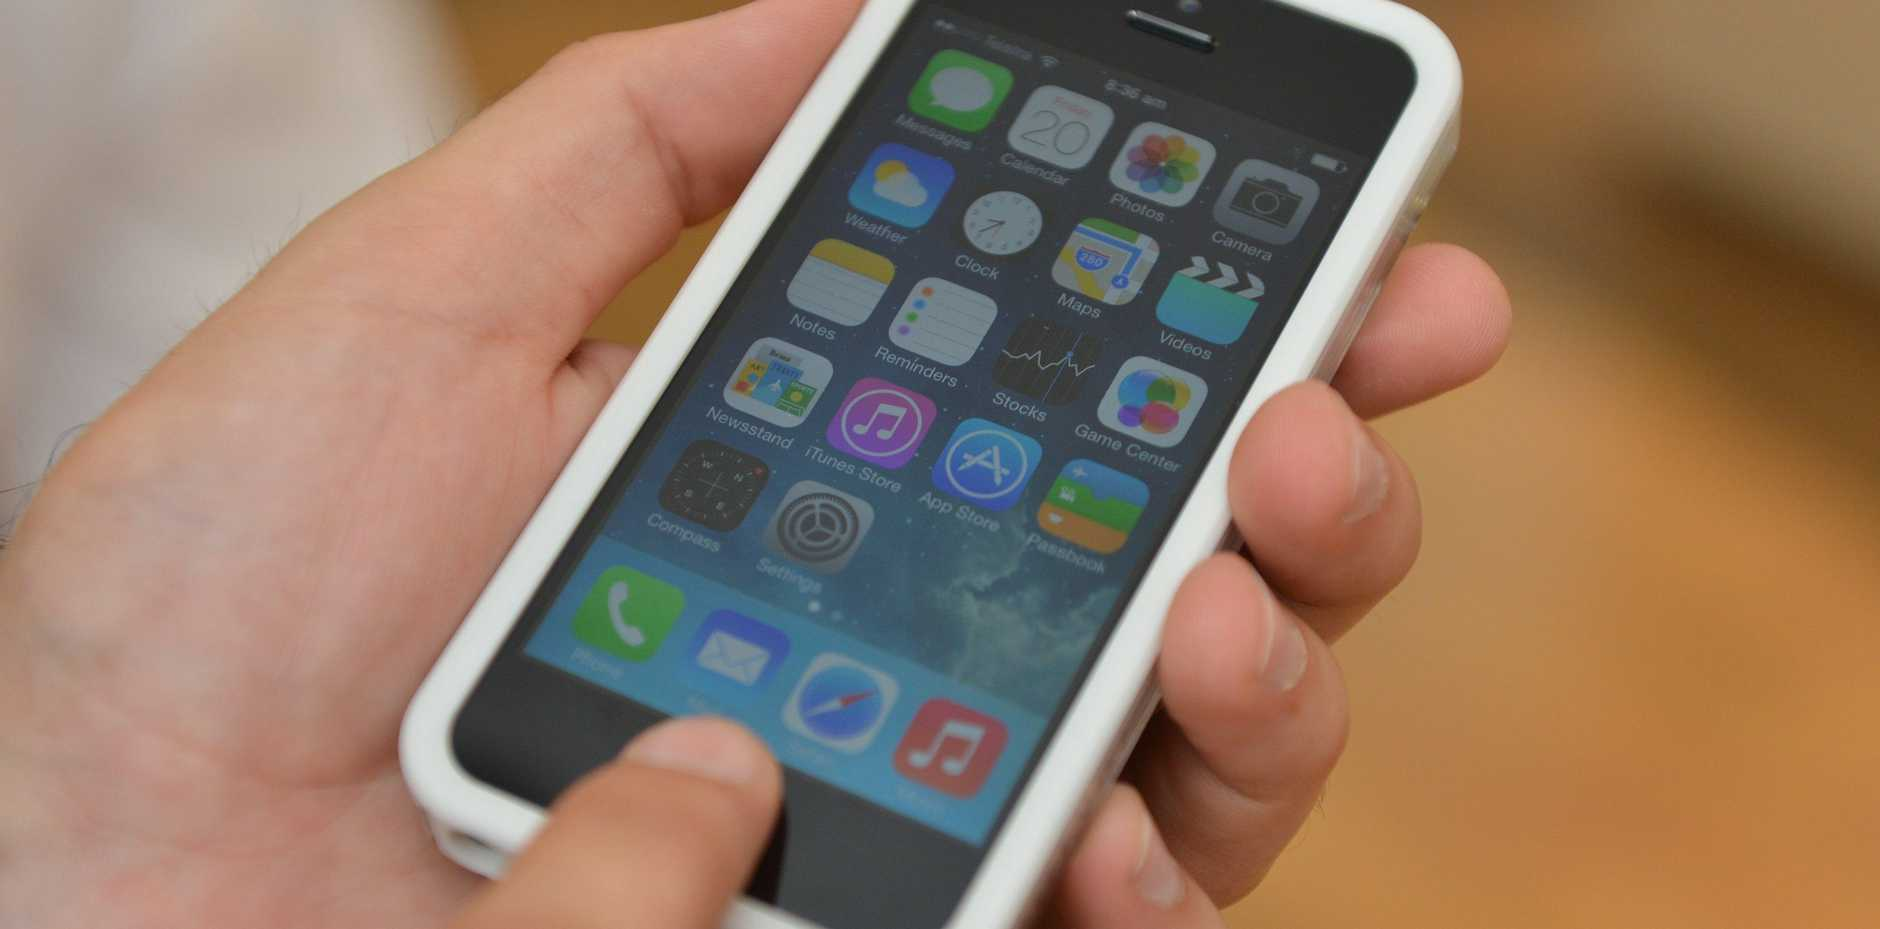 BIG TROUBLE: Children need to be aware that sexting can lead to legal implications.